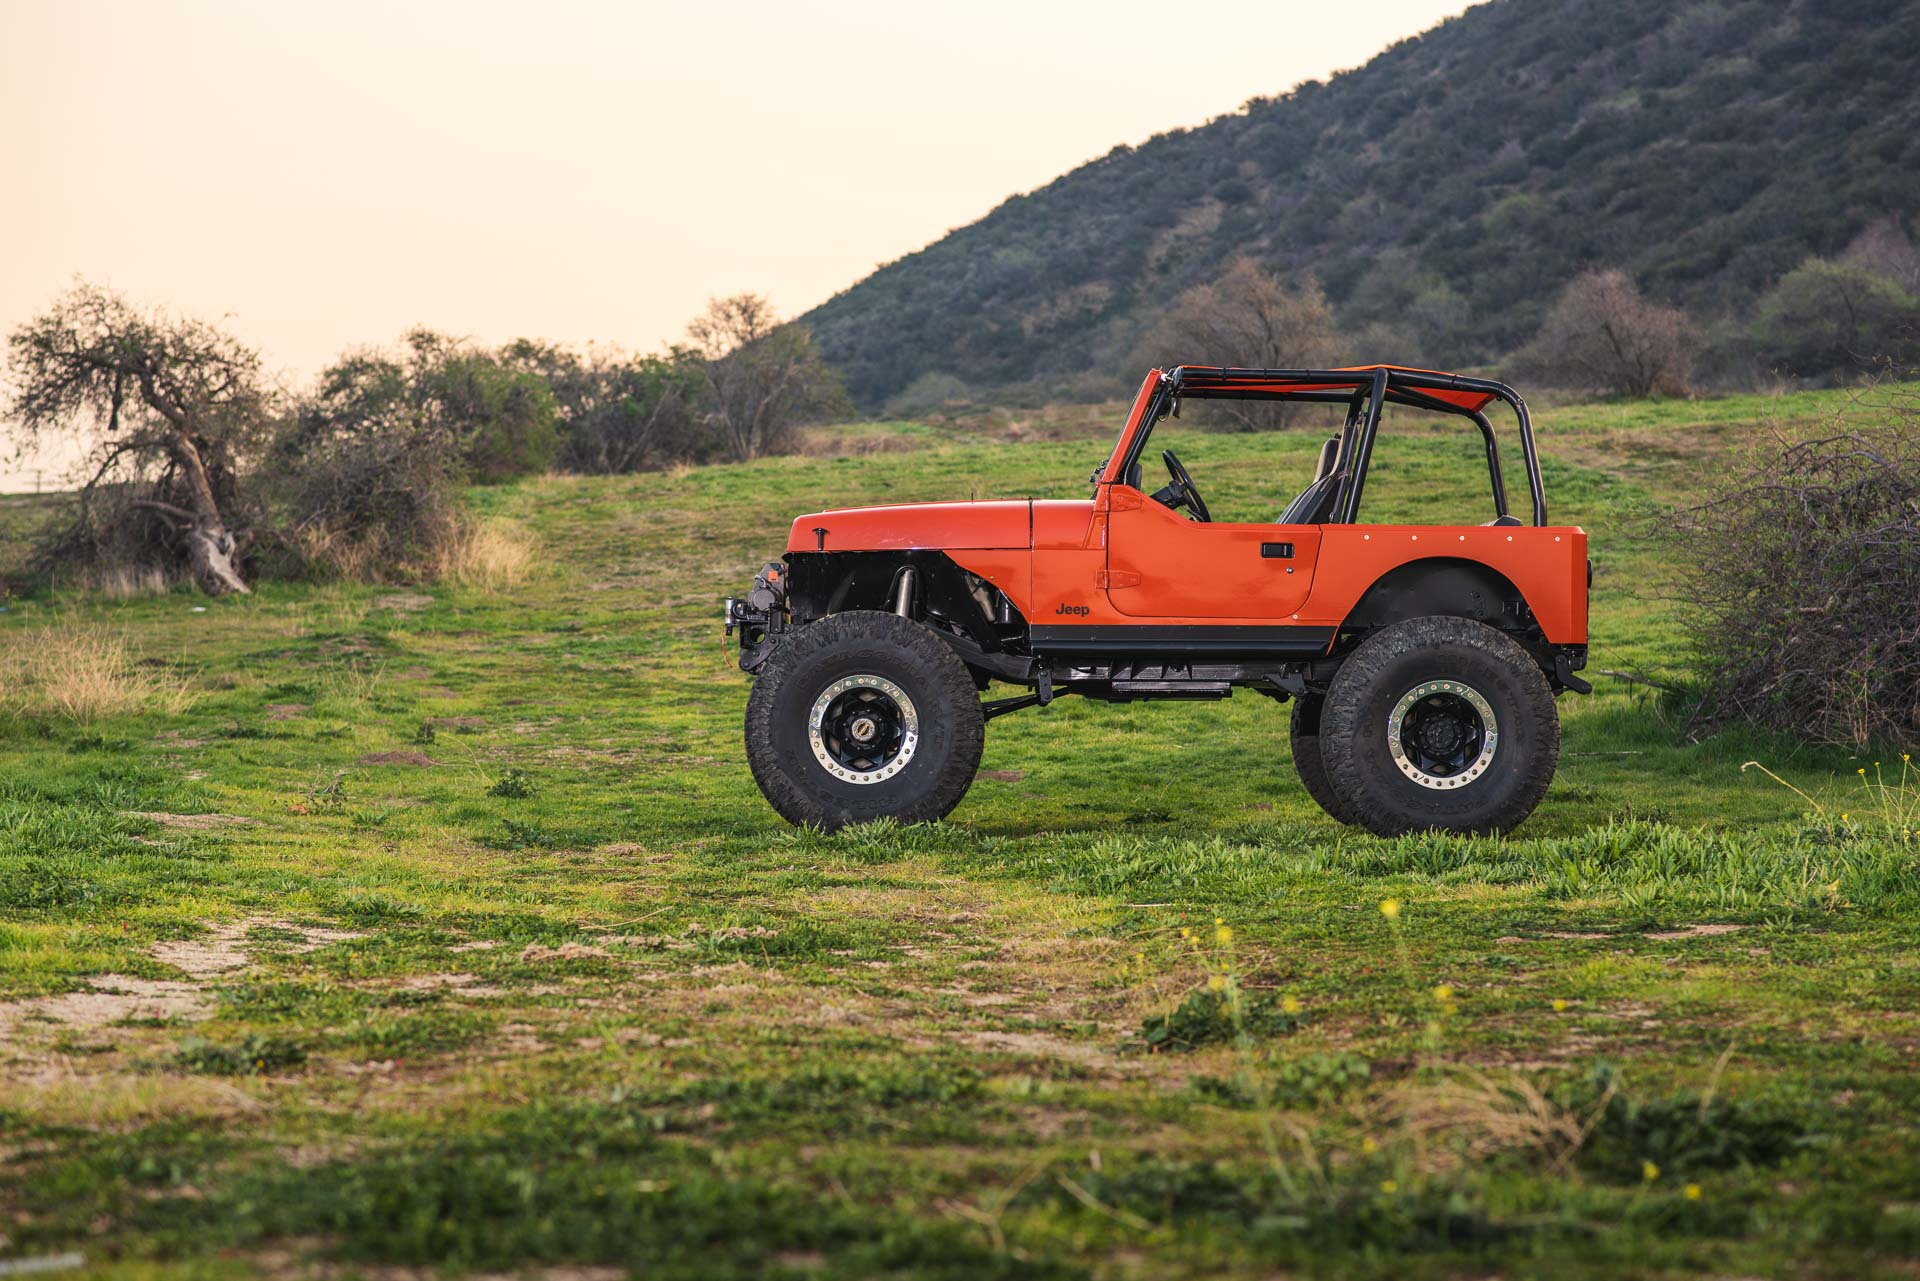 40 inch Patagonia MT tires on Jeep YJ